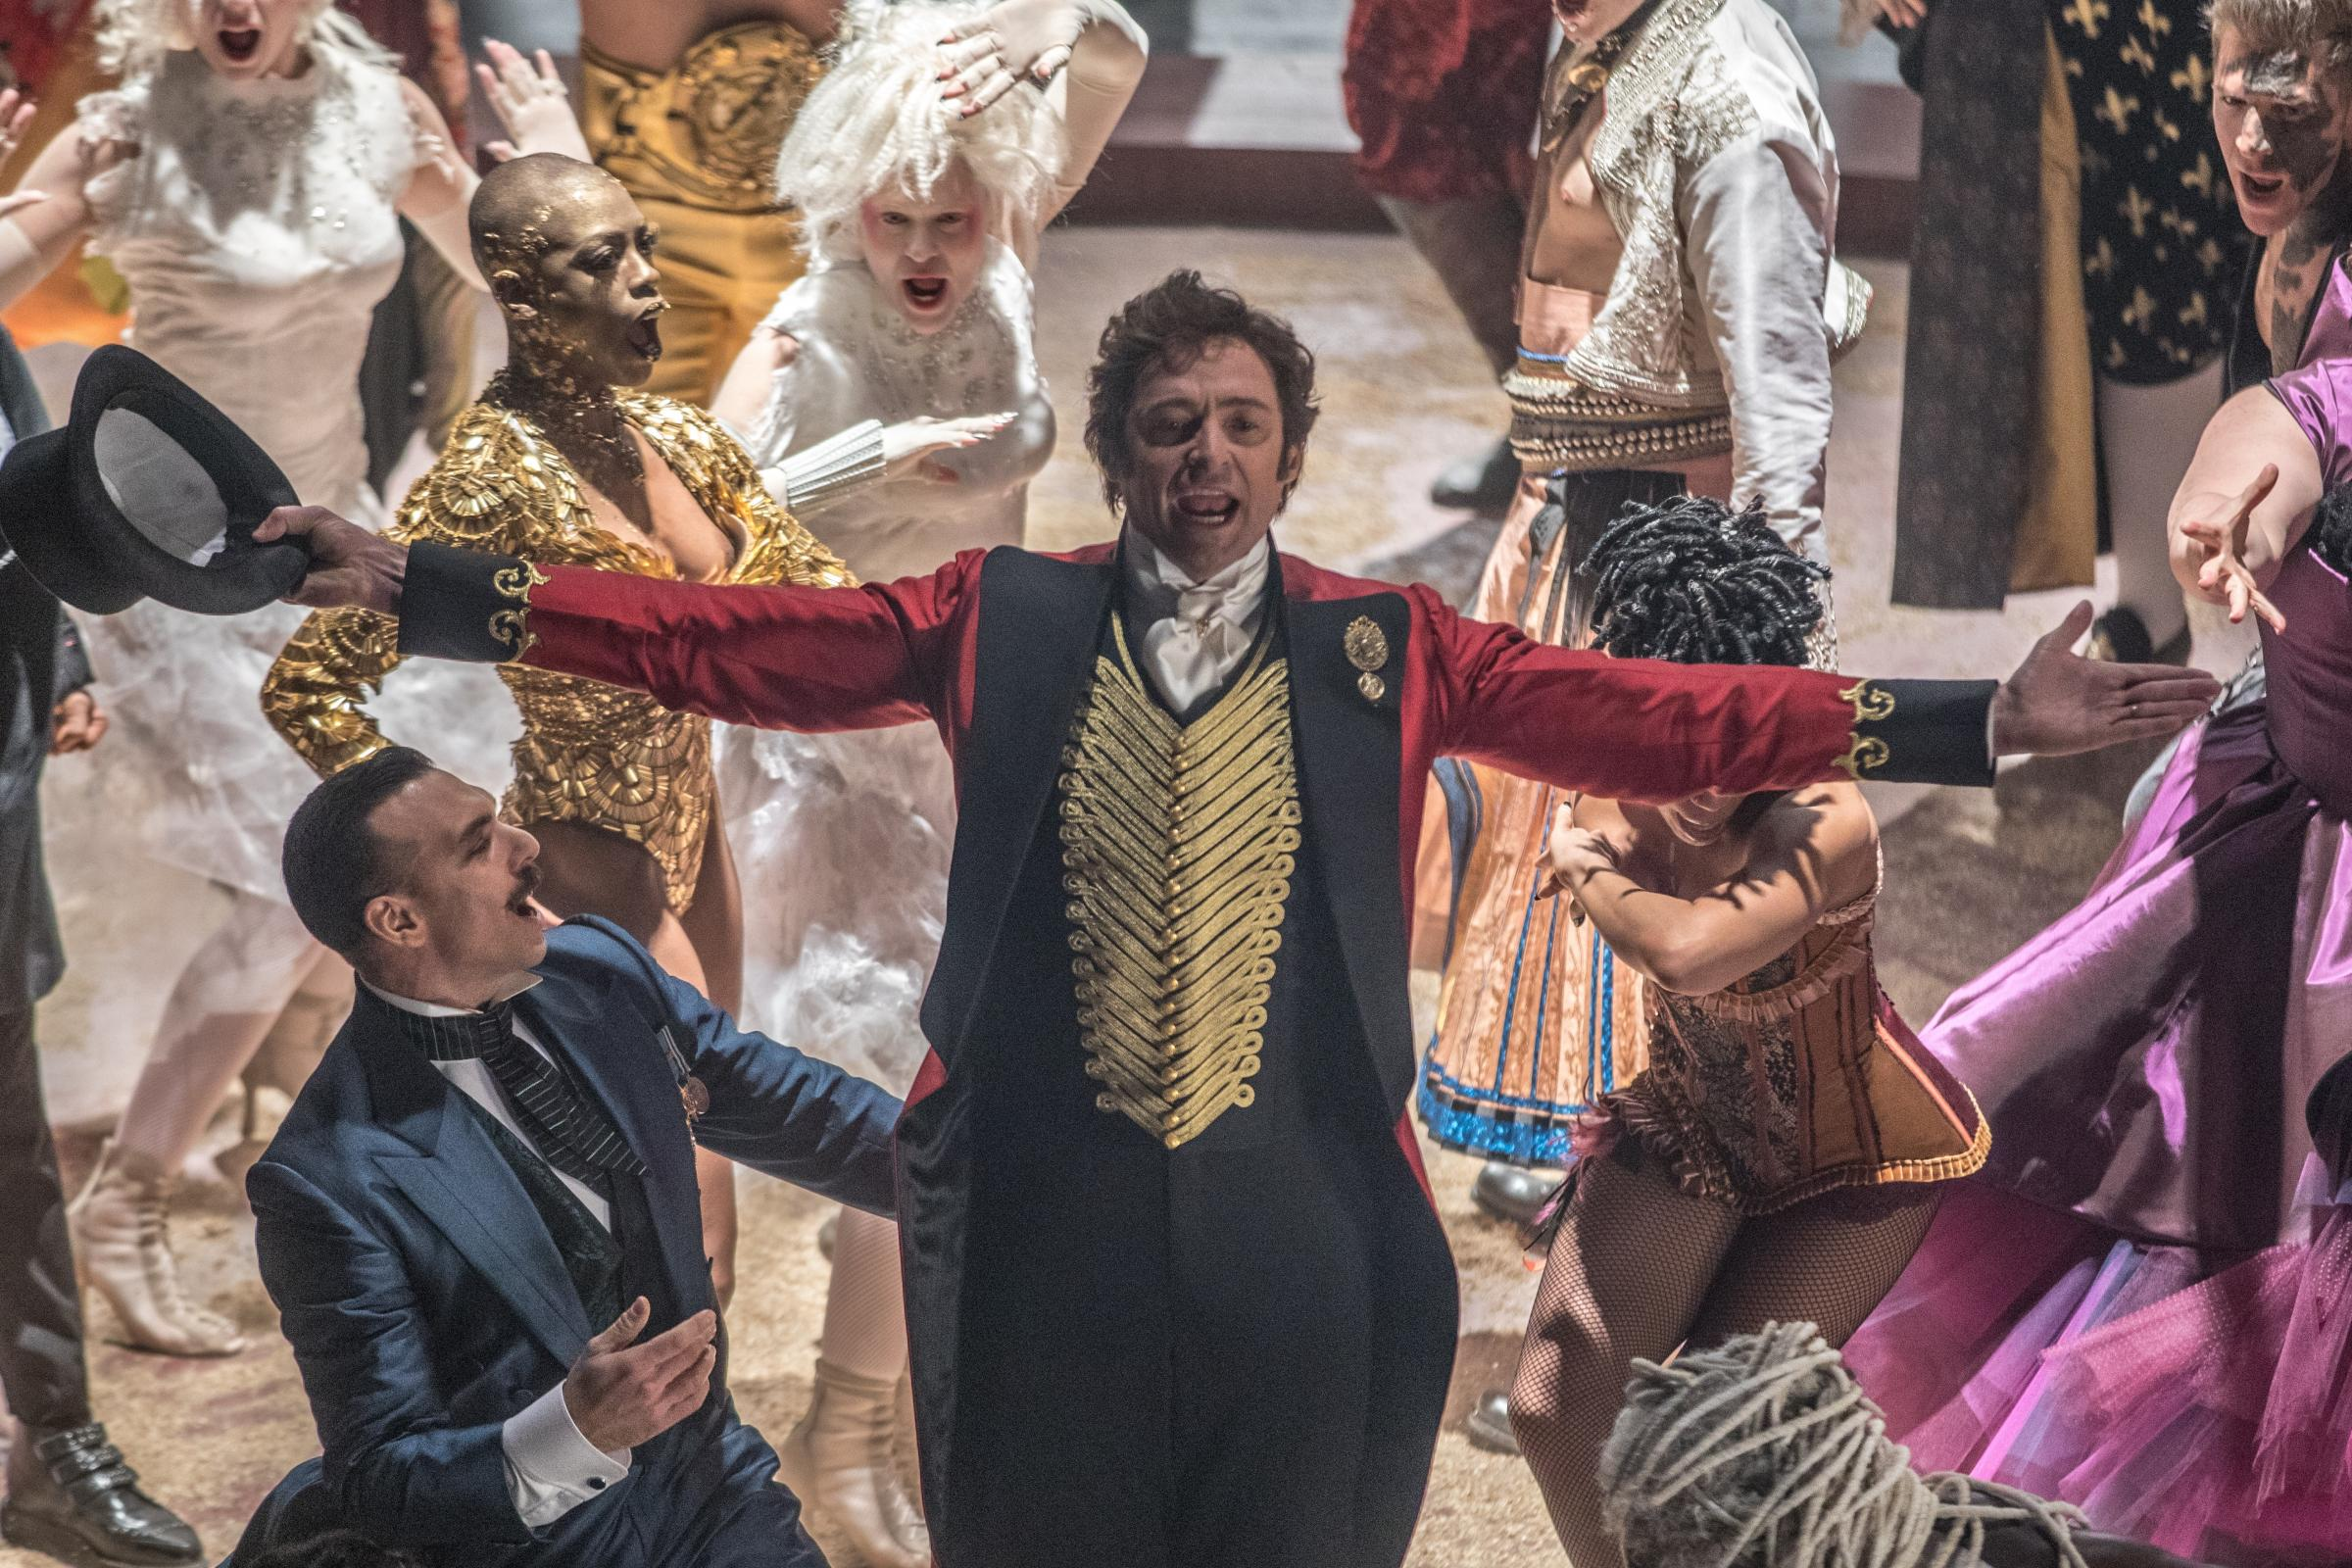 Huge Greatest Showman sing-along club night coming to Glasgow